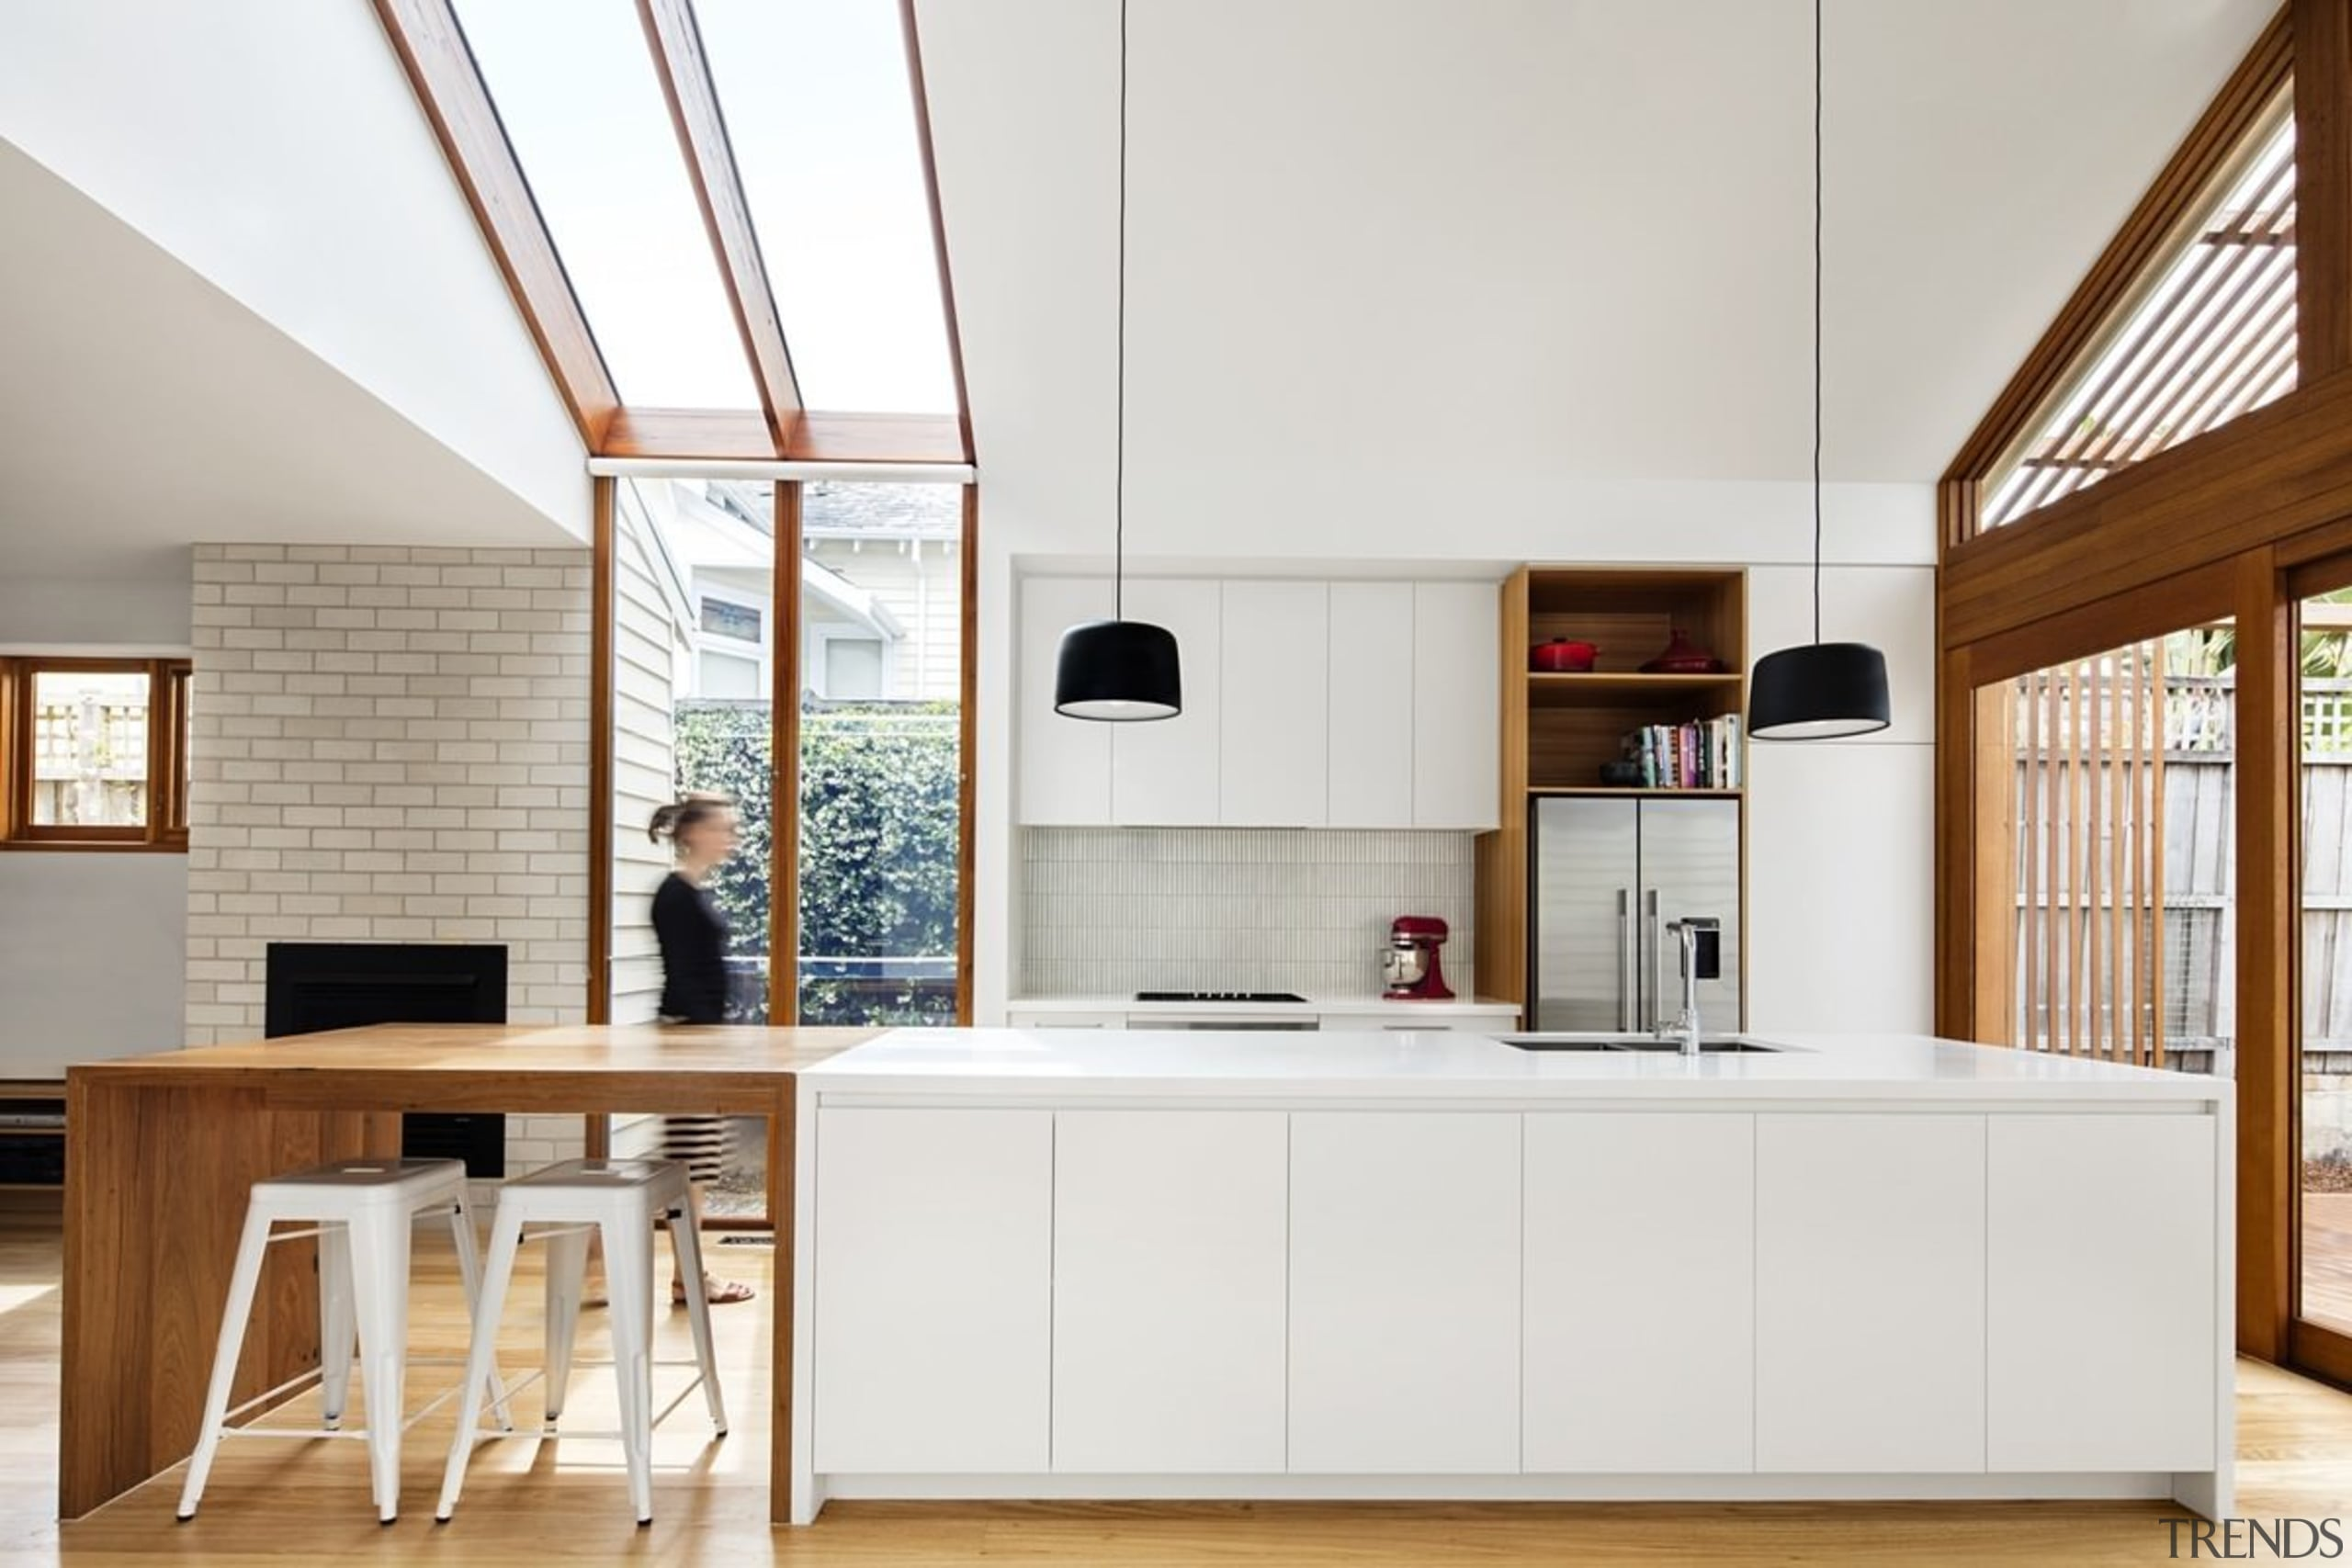 Windows run up from the floor and transform architecture, cuisine classique, furniture, interior design, kitchen, white